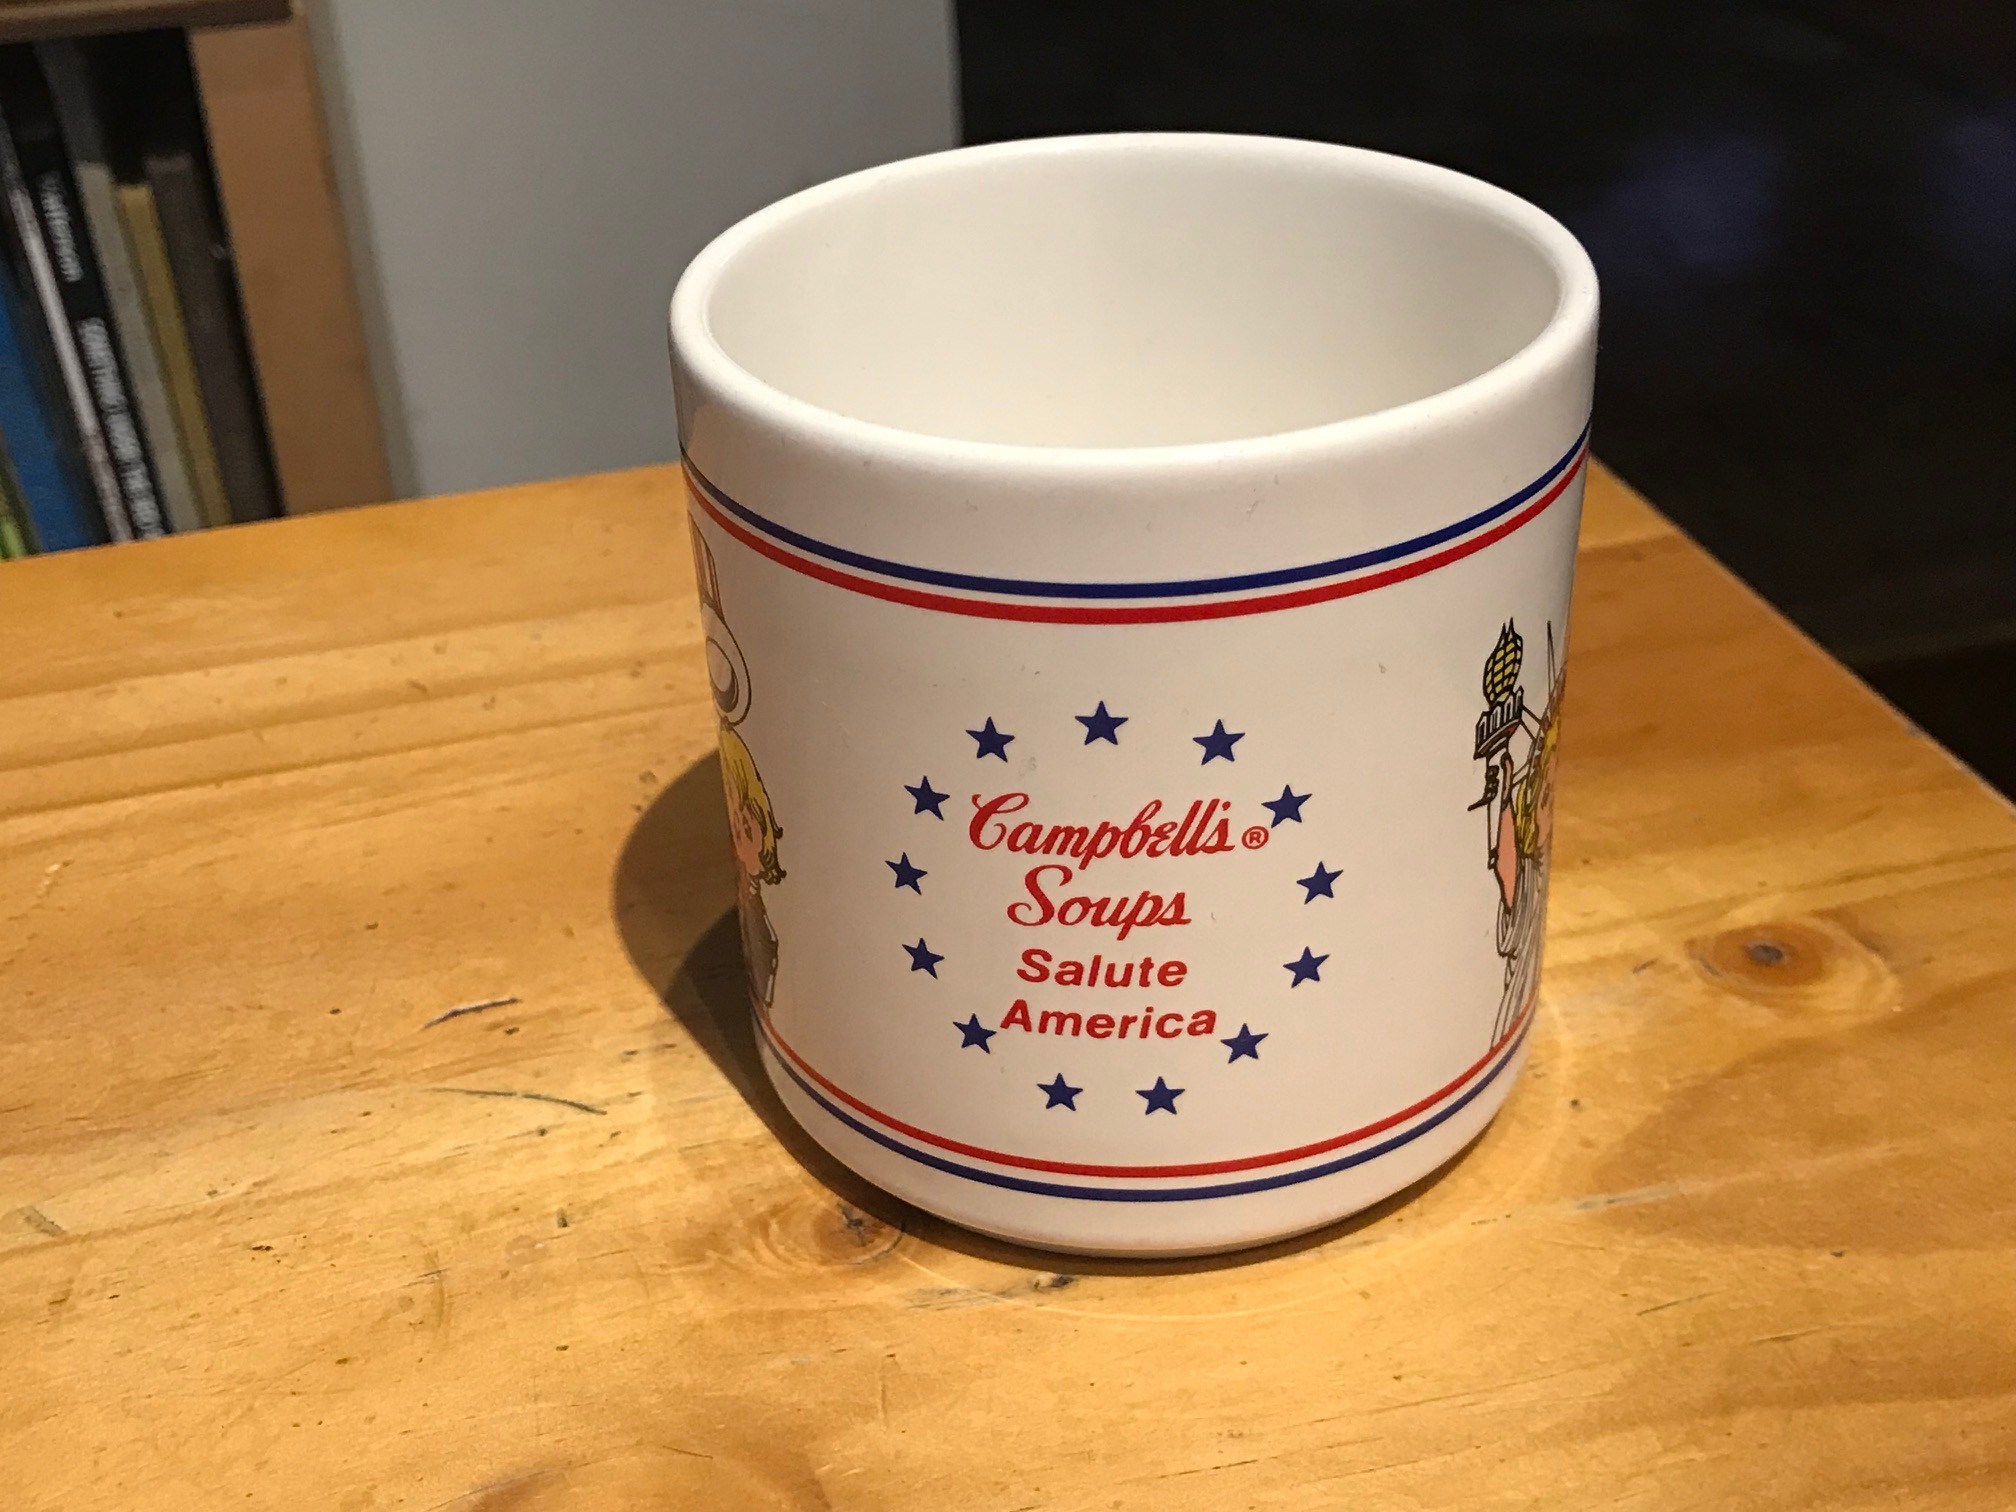 "Campbell's Soups Salute America 1976 Ceramic Soup Mug: 65,300 ppm Lead + 882 ppm Cadmium [mmmm ""Lead is good food! - NOT]"